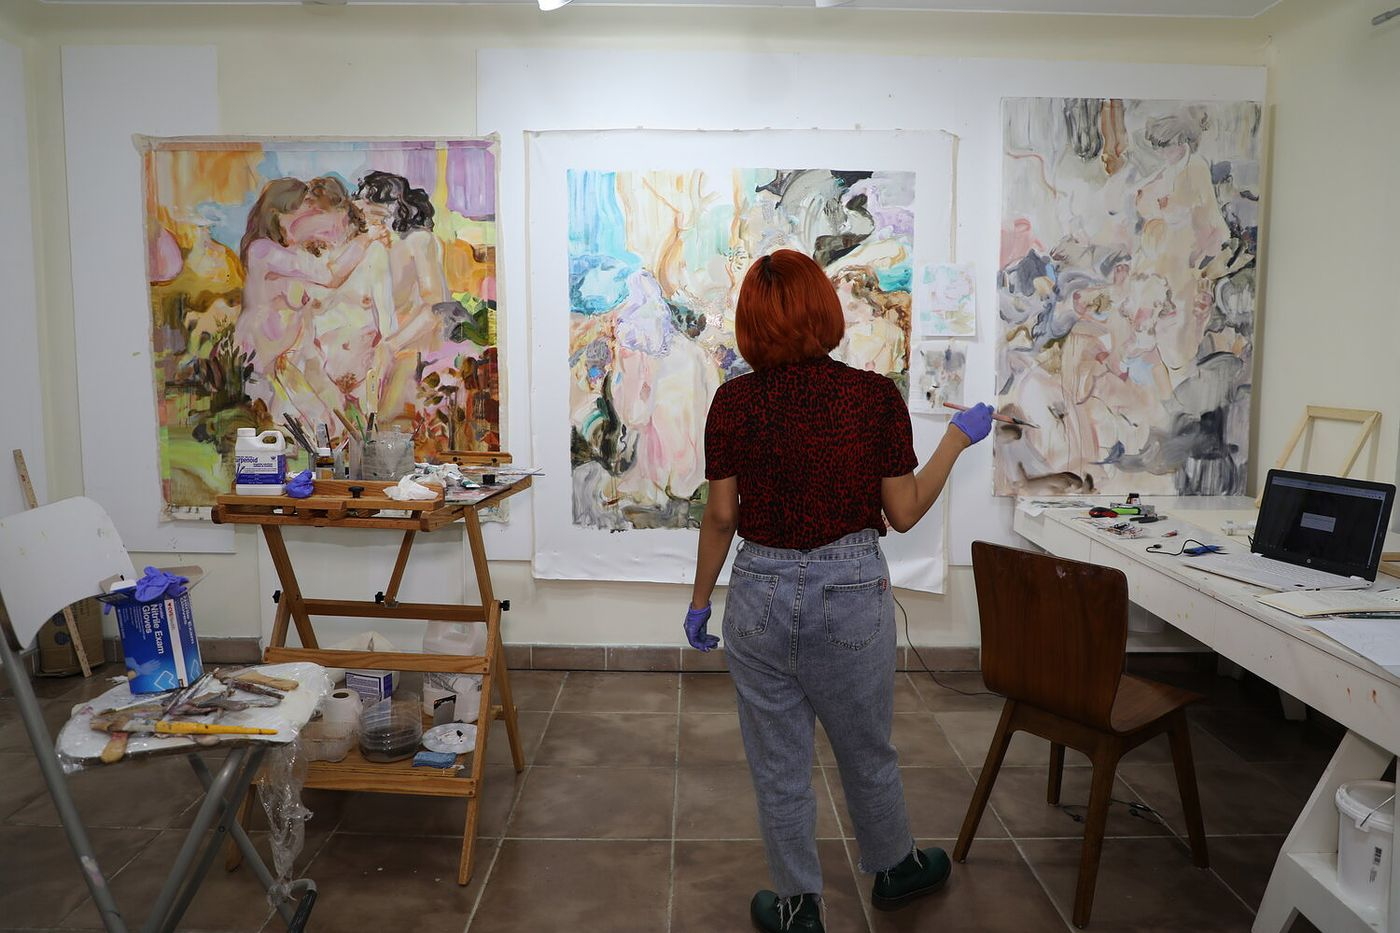 As part of our ongoing commitment to the arts and our institutional partners, we're checking in to see how they've adjusted to these challenging times. First, we caught up with artists from Miami's Fountainhead Residency and Studios.